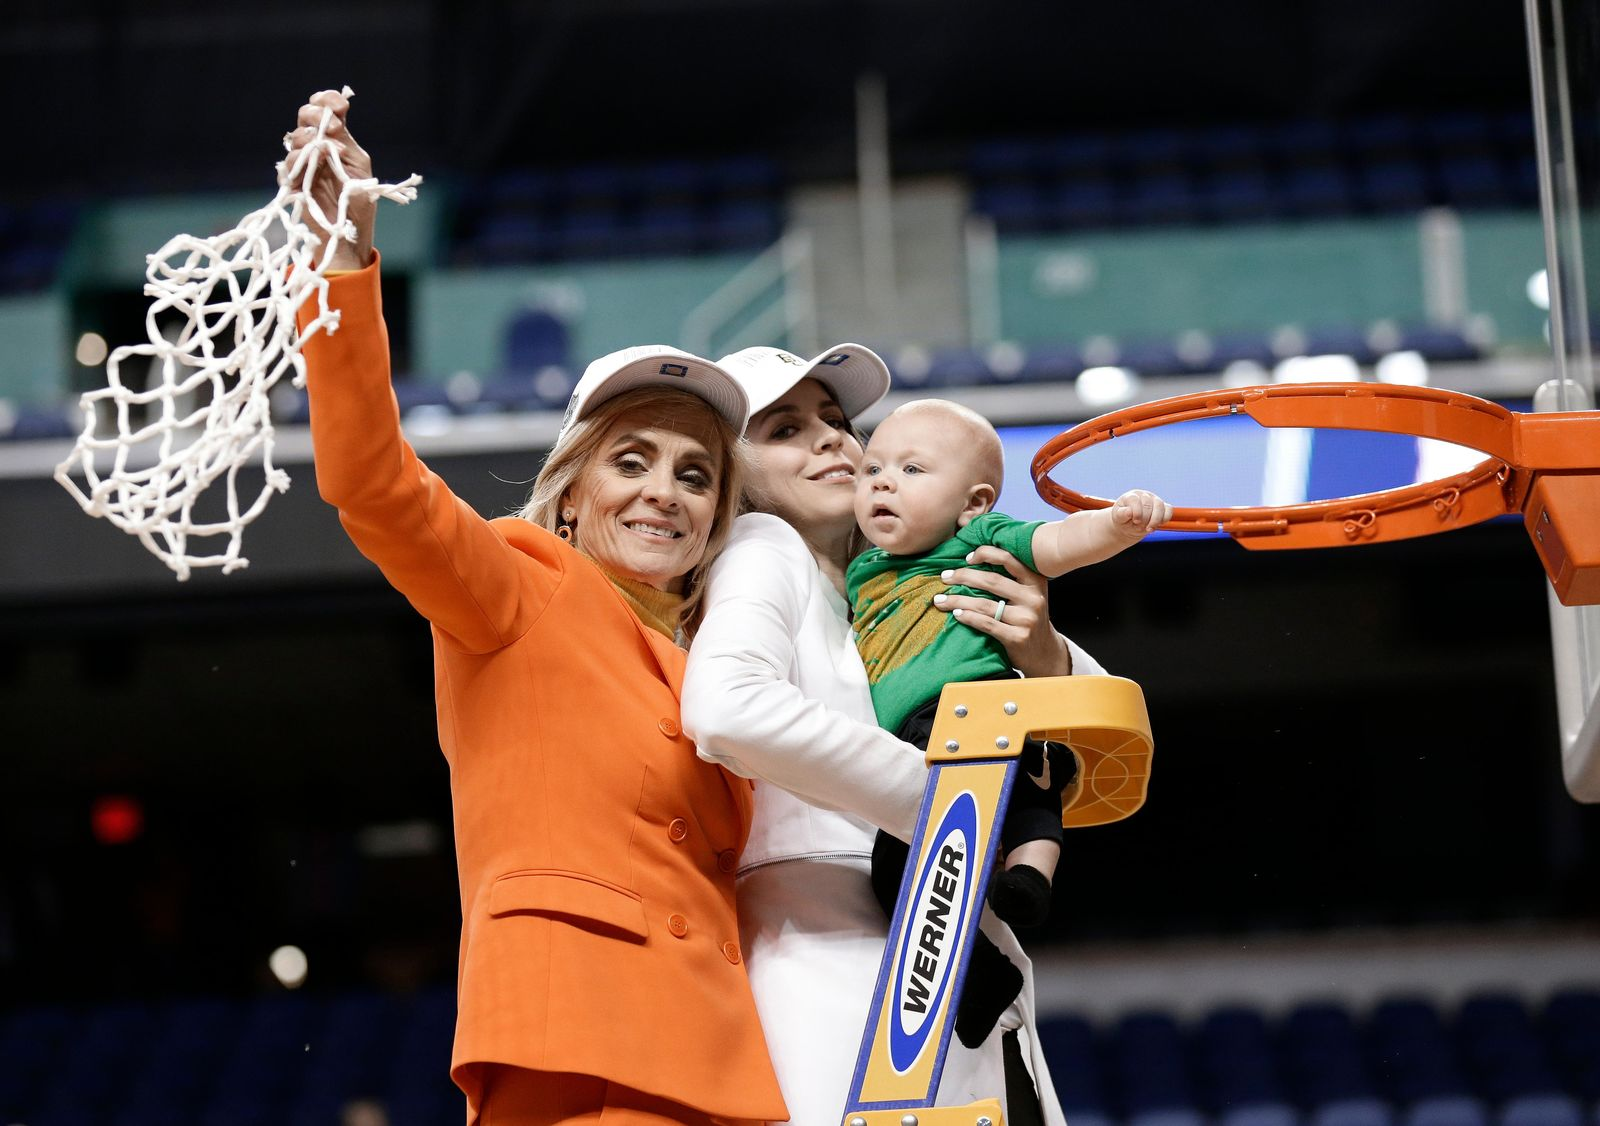 Baylor head coach Kim Mulkey, left, waves the net as she celebrates with her daughter Makenzie Fuller, center, and grandson Kannon Fuller, right, after Baylor defeated Iowa in a regional final women's college basketball game in the NCAA Tournament in Greensboro, N.C., Monday, April 1, 2019. (AP Photo/Gerry Broome)